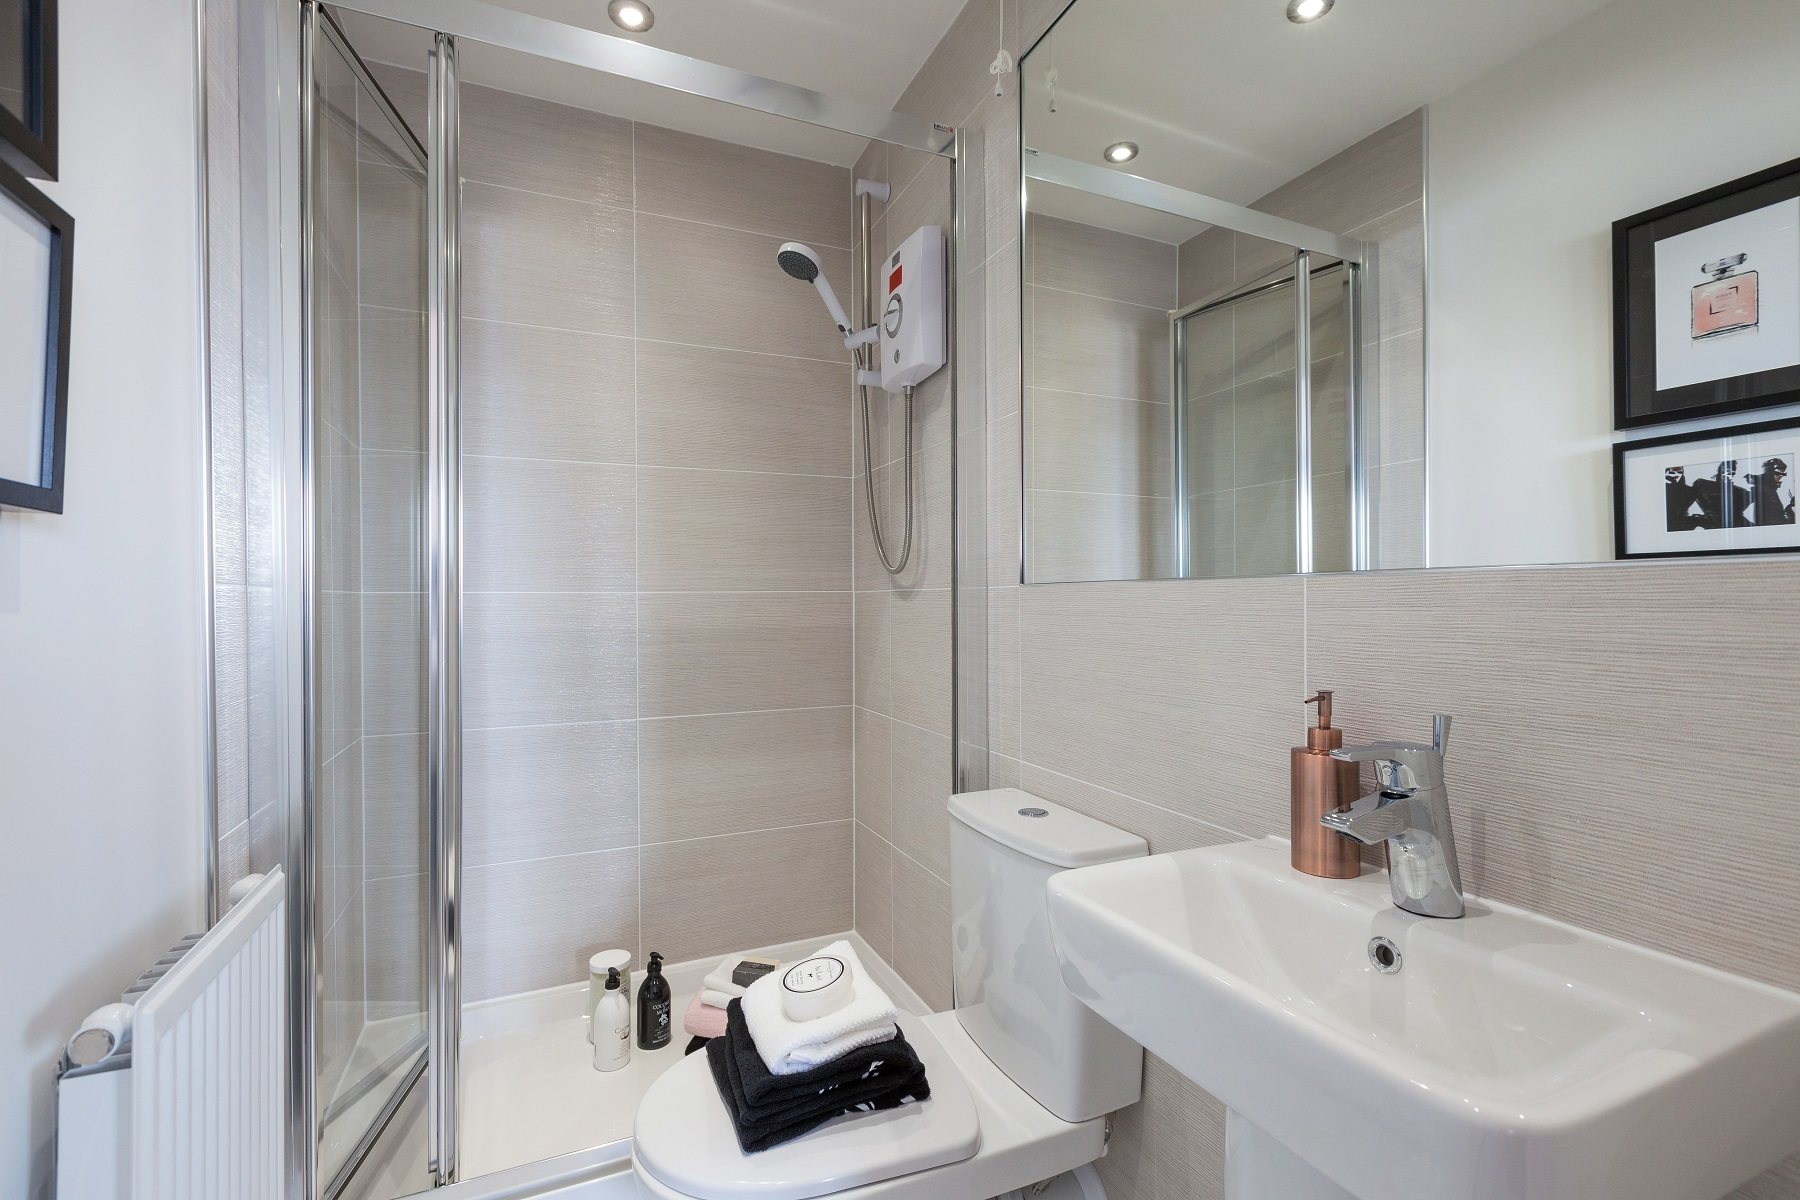 TW NM_Pastures New_monkford_En-suite